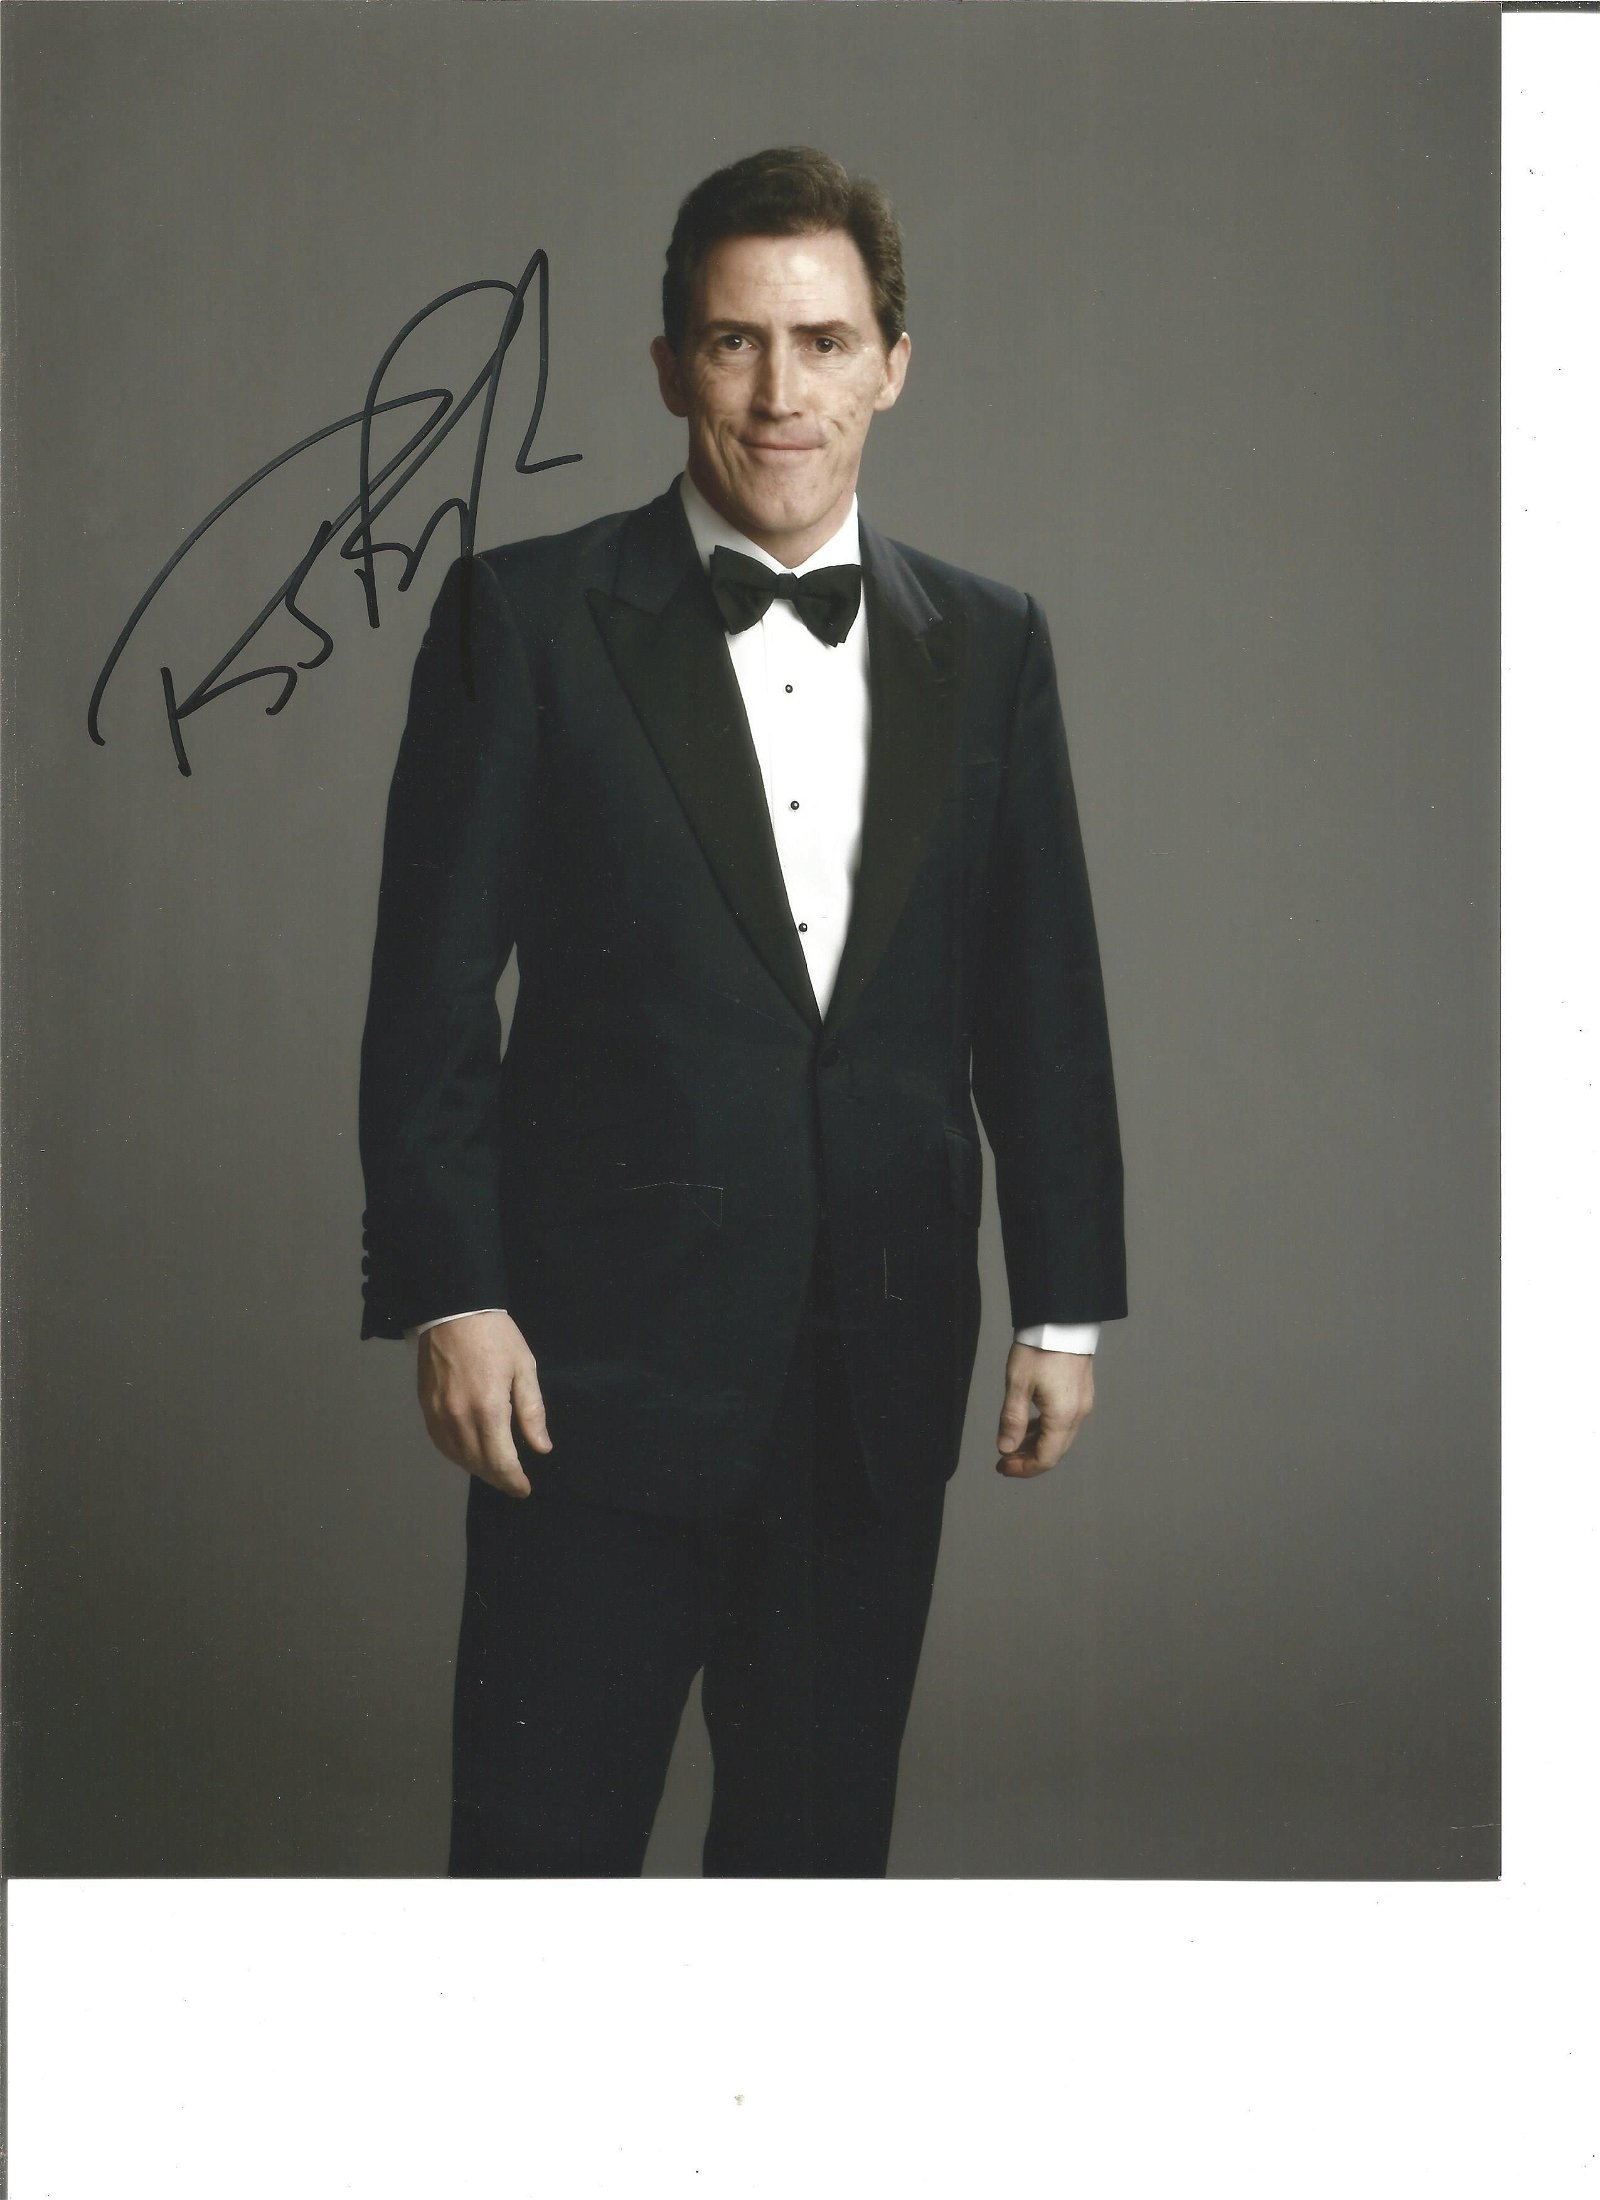 Rob Brydon Actor Comedian Signed 8x10 Photo. Good